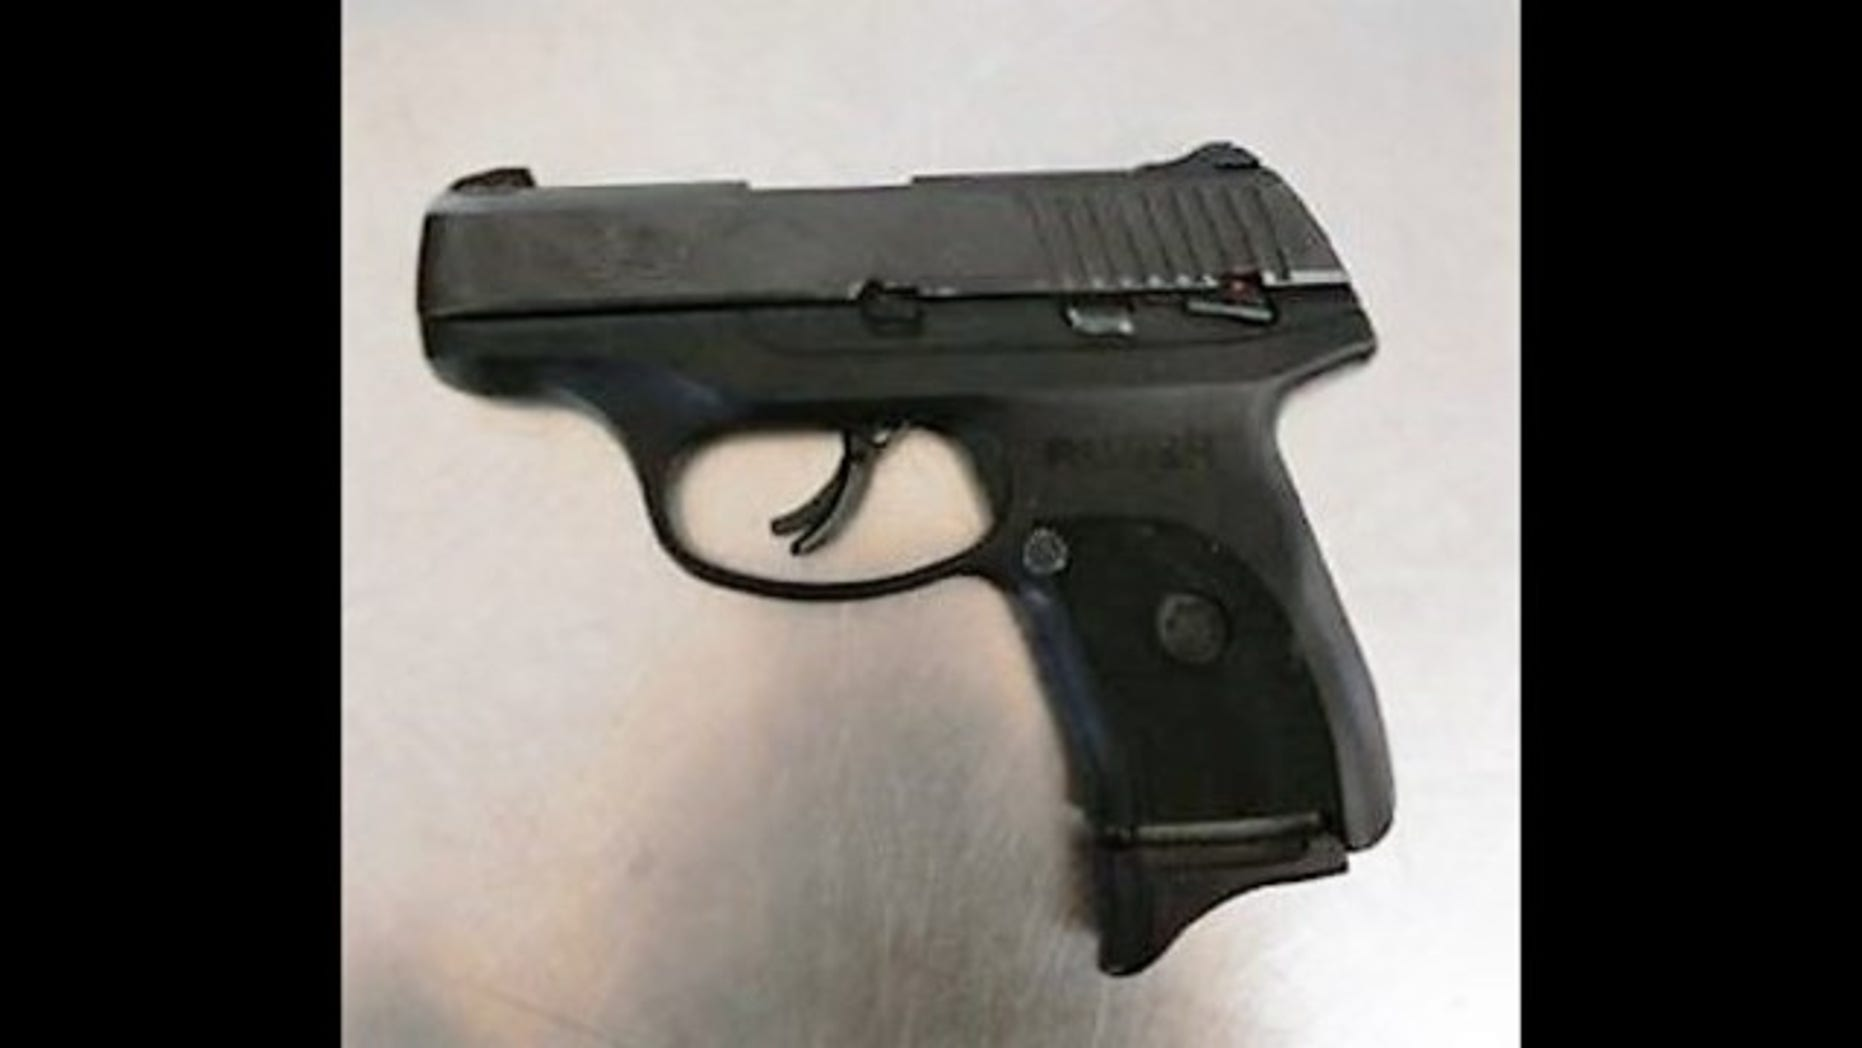 A loaded gun was found in a carry-on bag at Reagan National Airport.